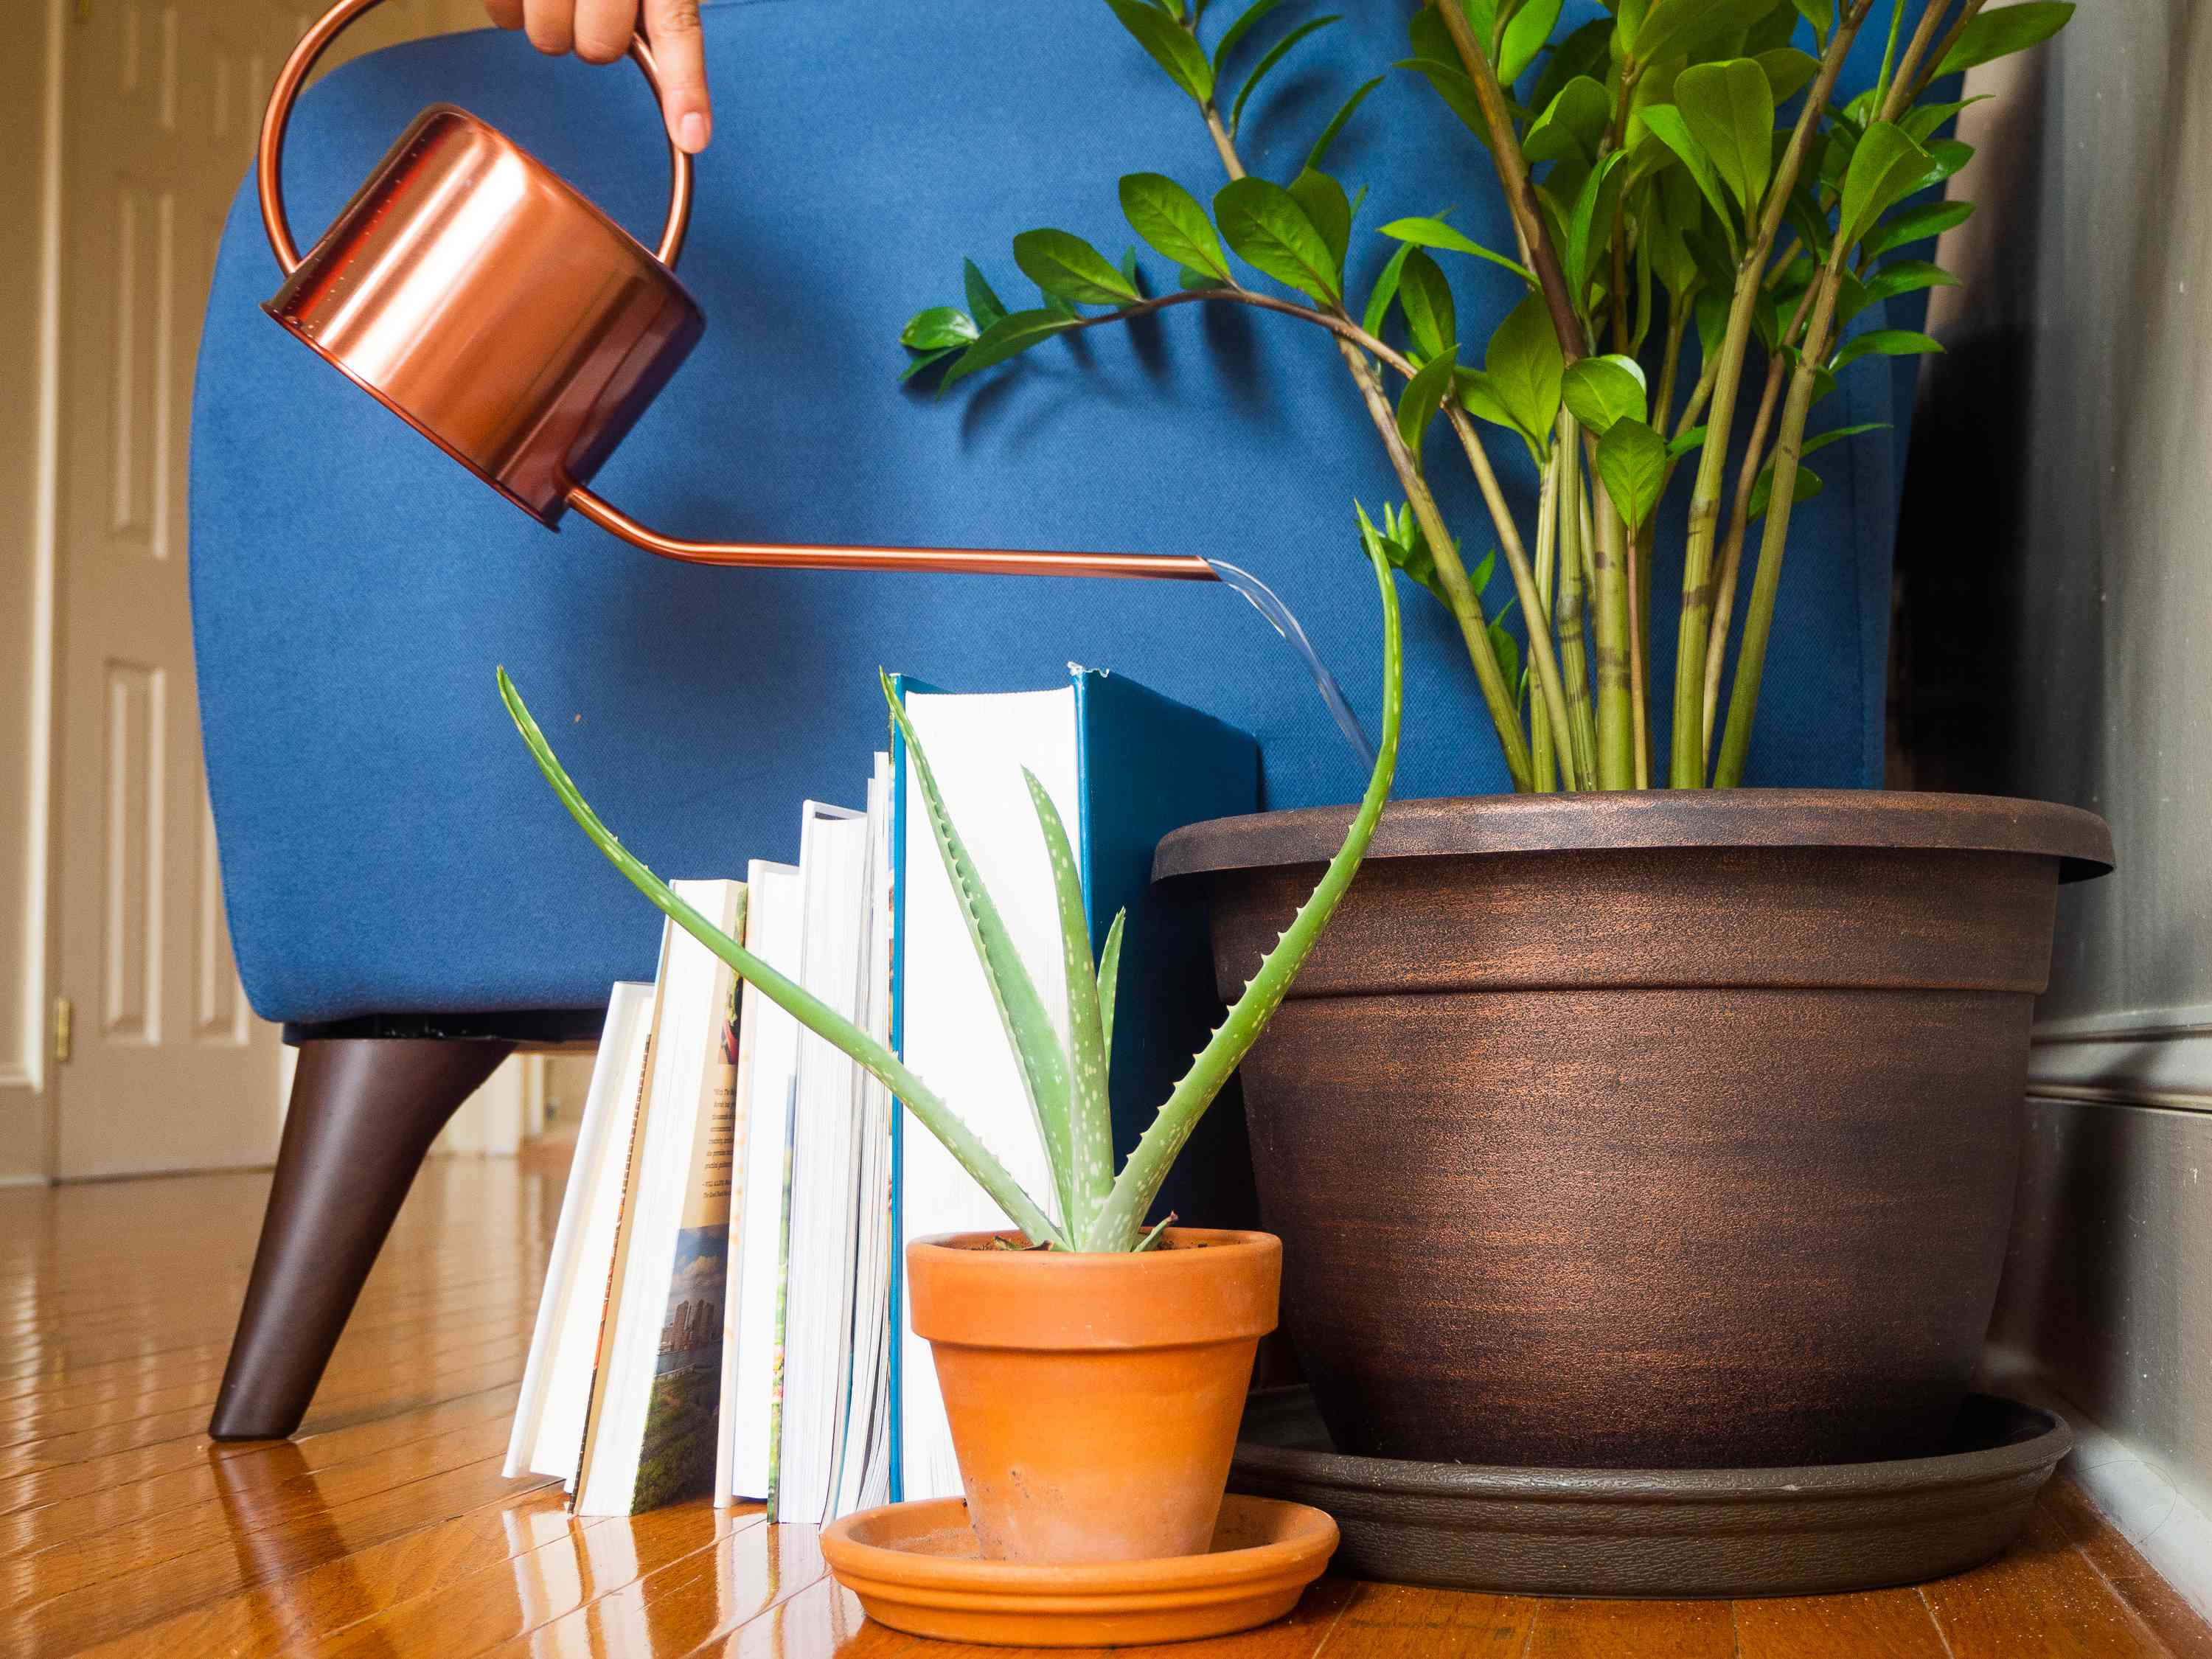 Copper watering can pouring water over houseplant next to blue couch and books after move